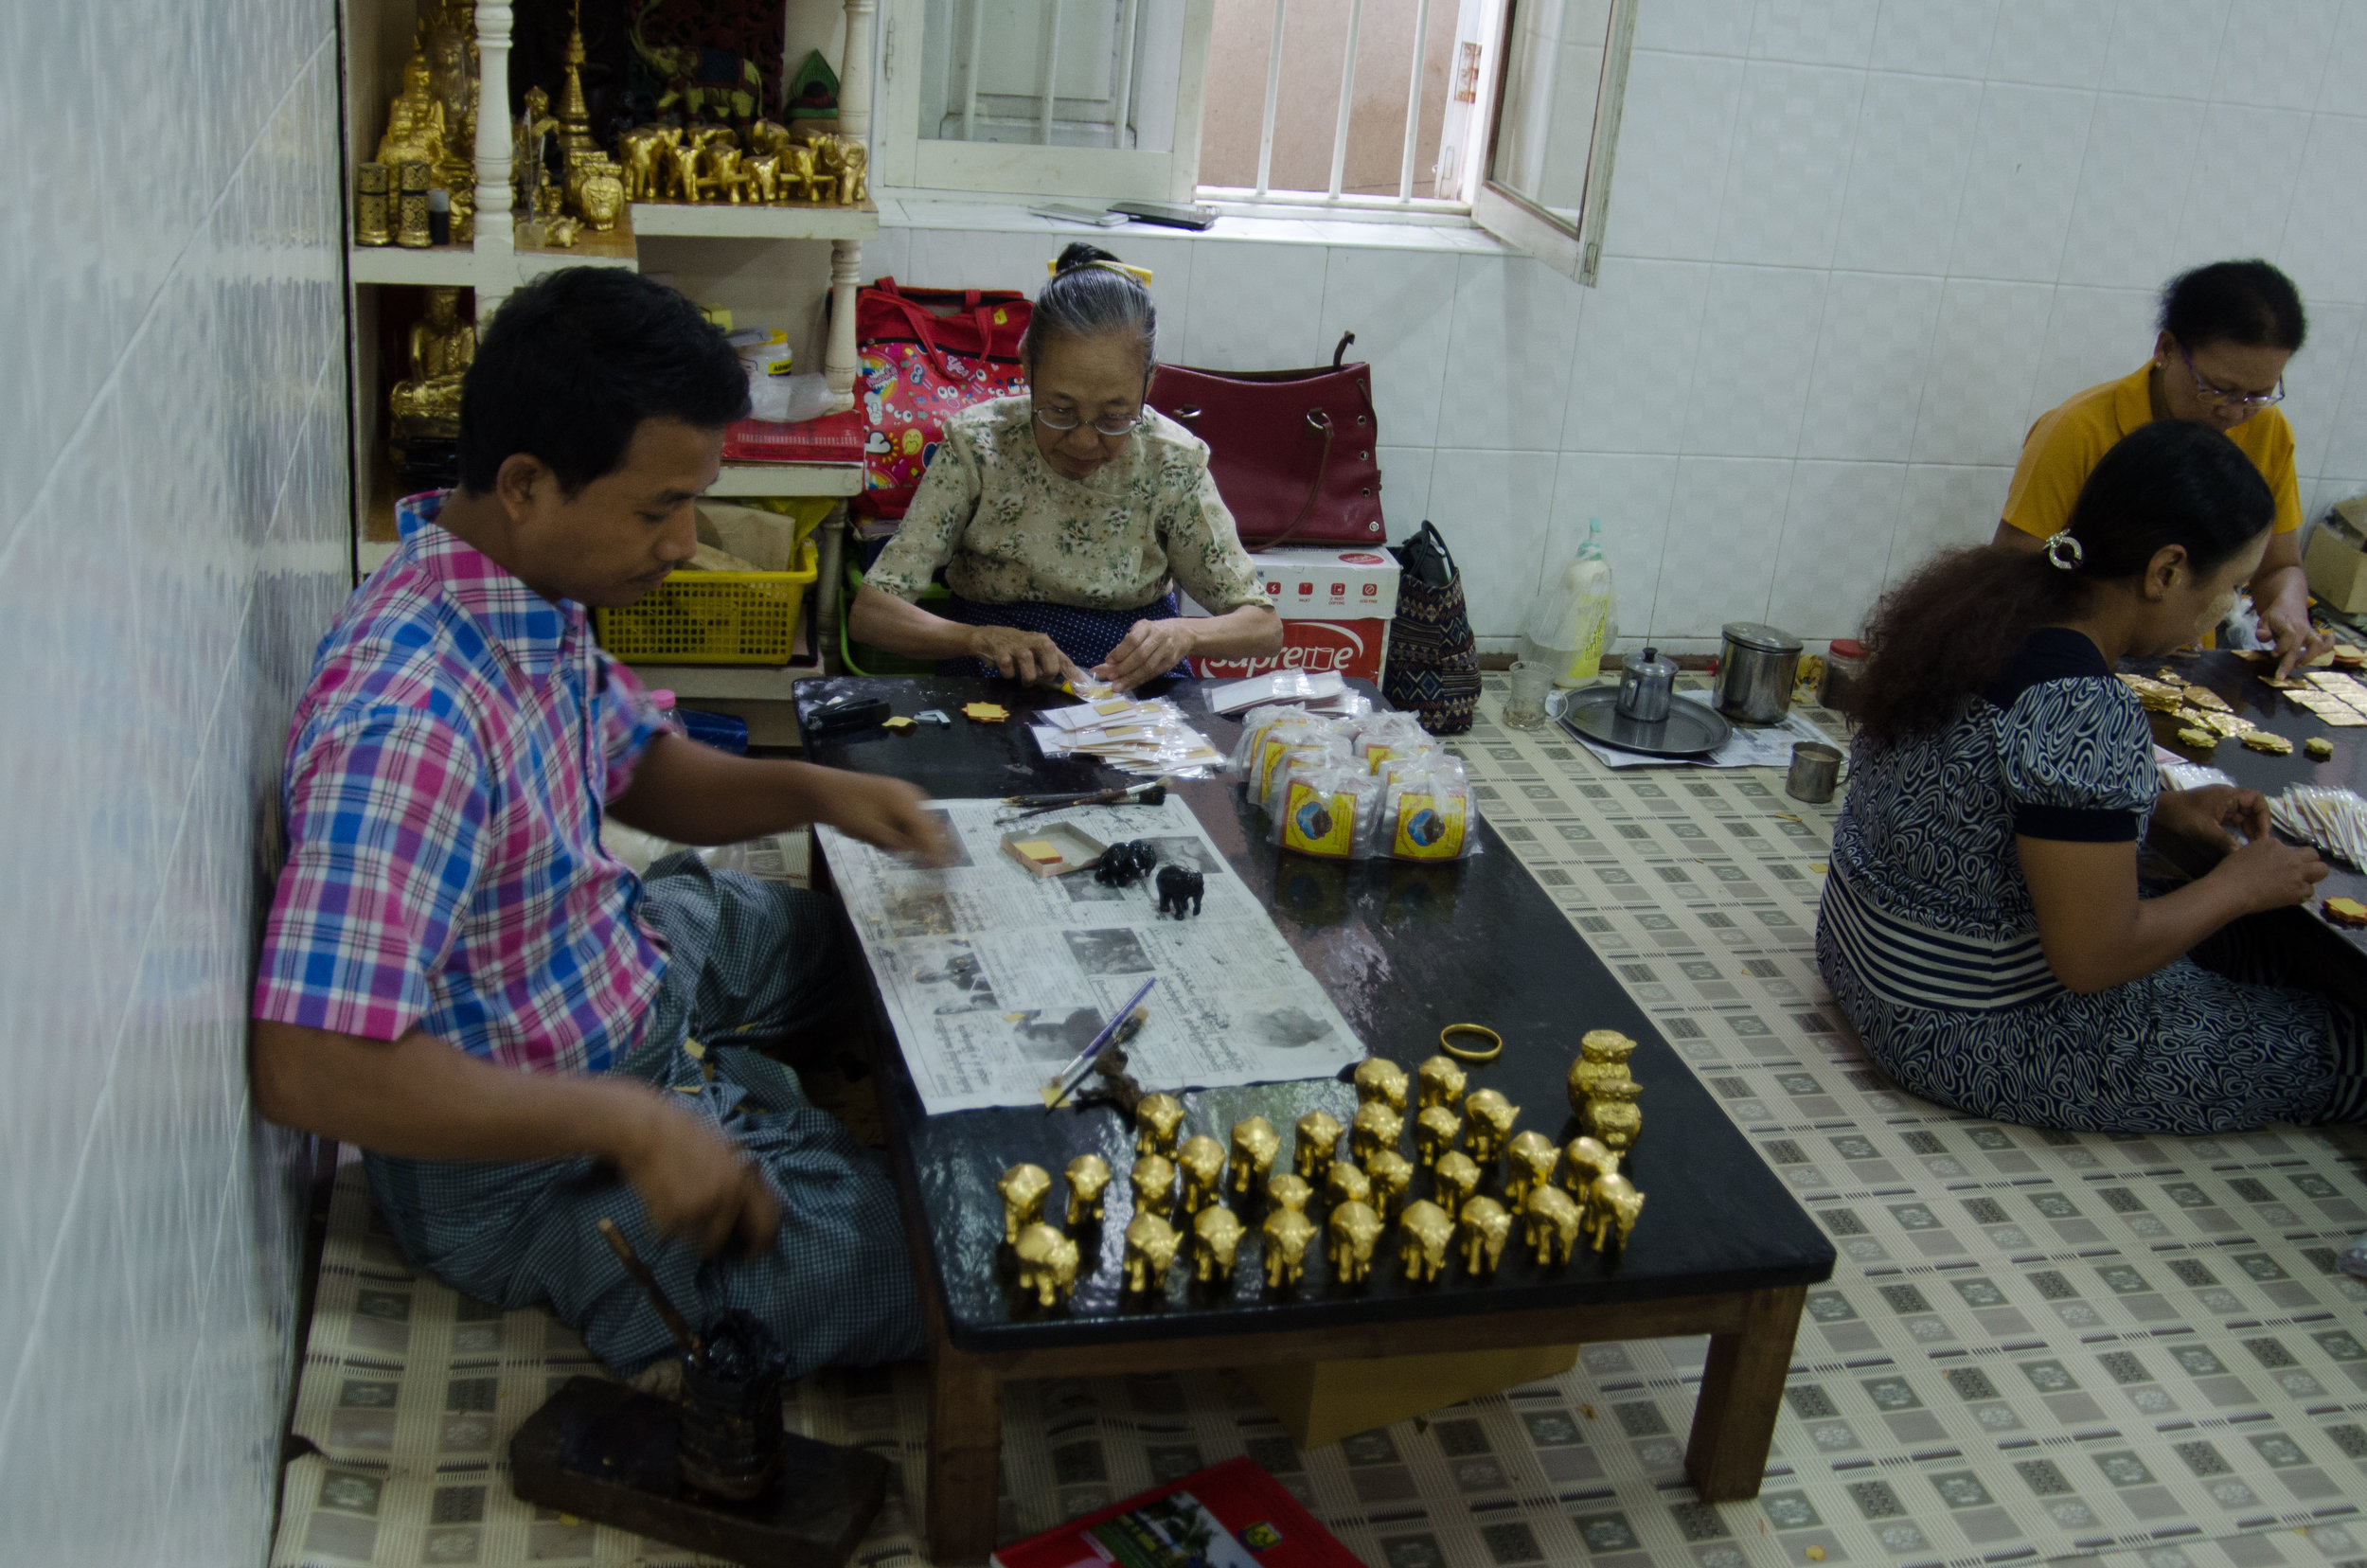 Preparing gold leaf elephants 001, Mandalay, Myanmar, 17 NOv 2017.jpg